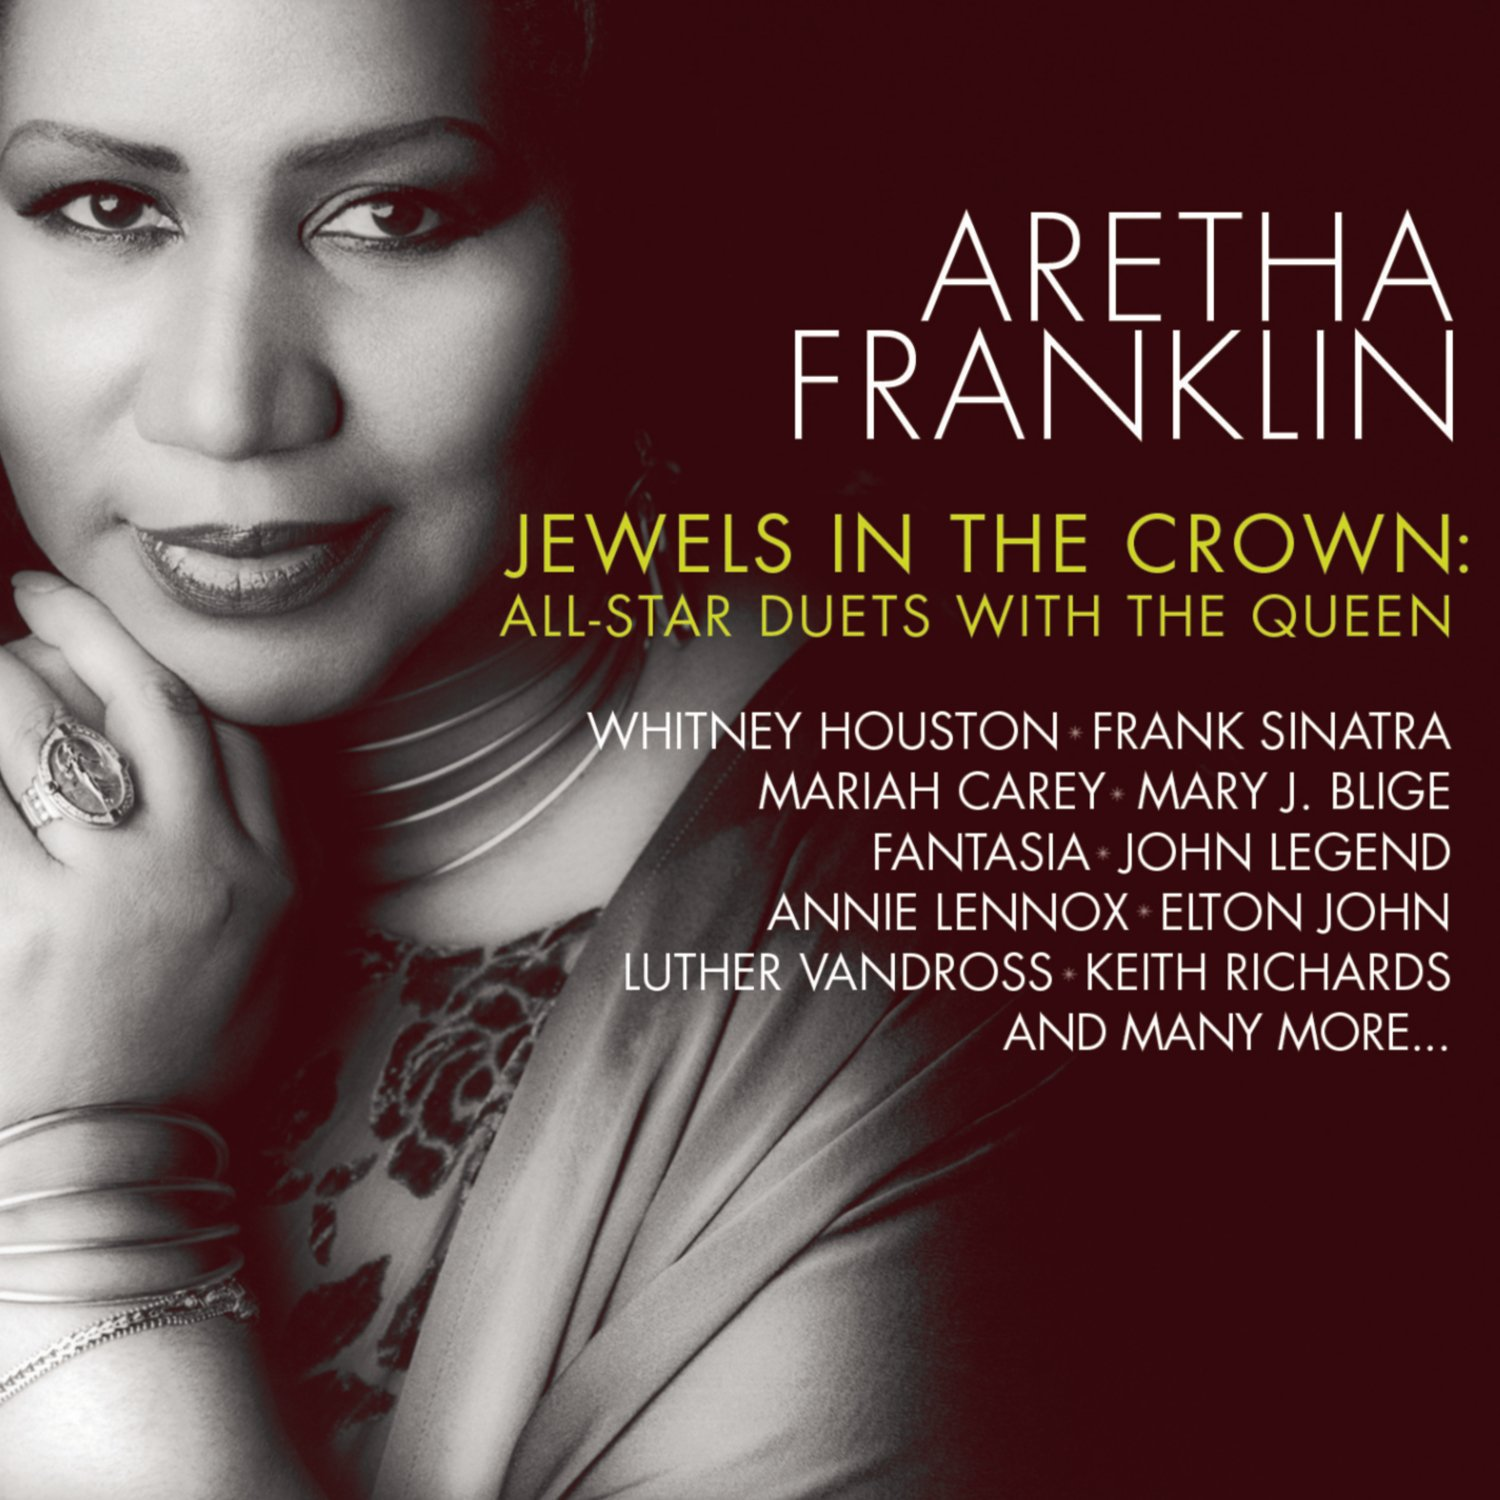 Aretha Franklin - CD Jewels in the Crown: All-Star Duets with the Queen